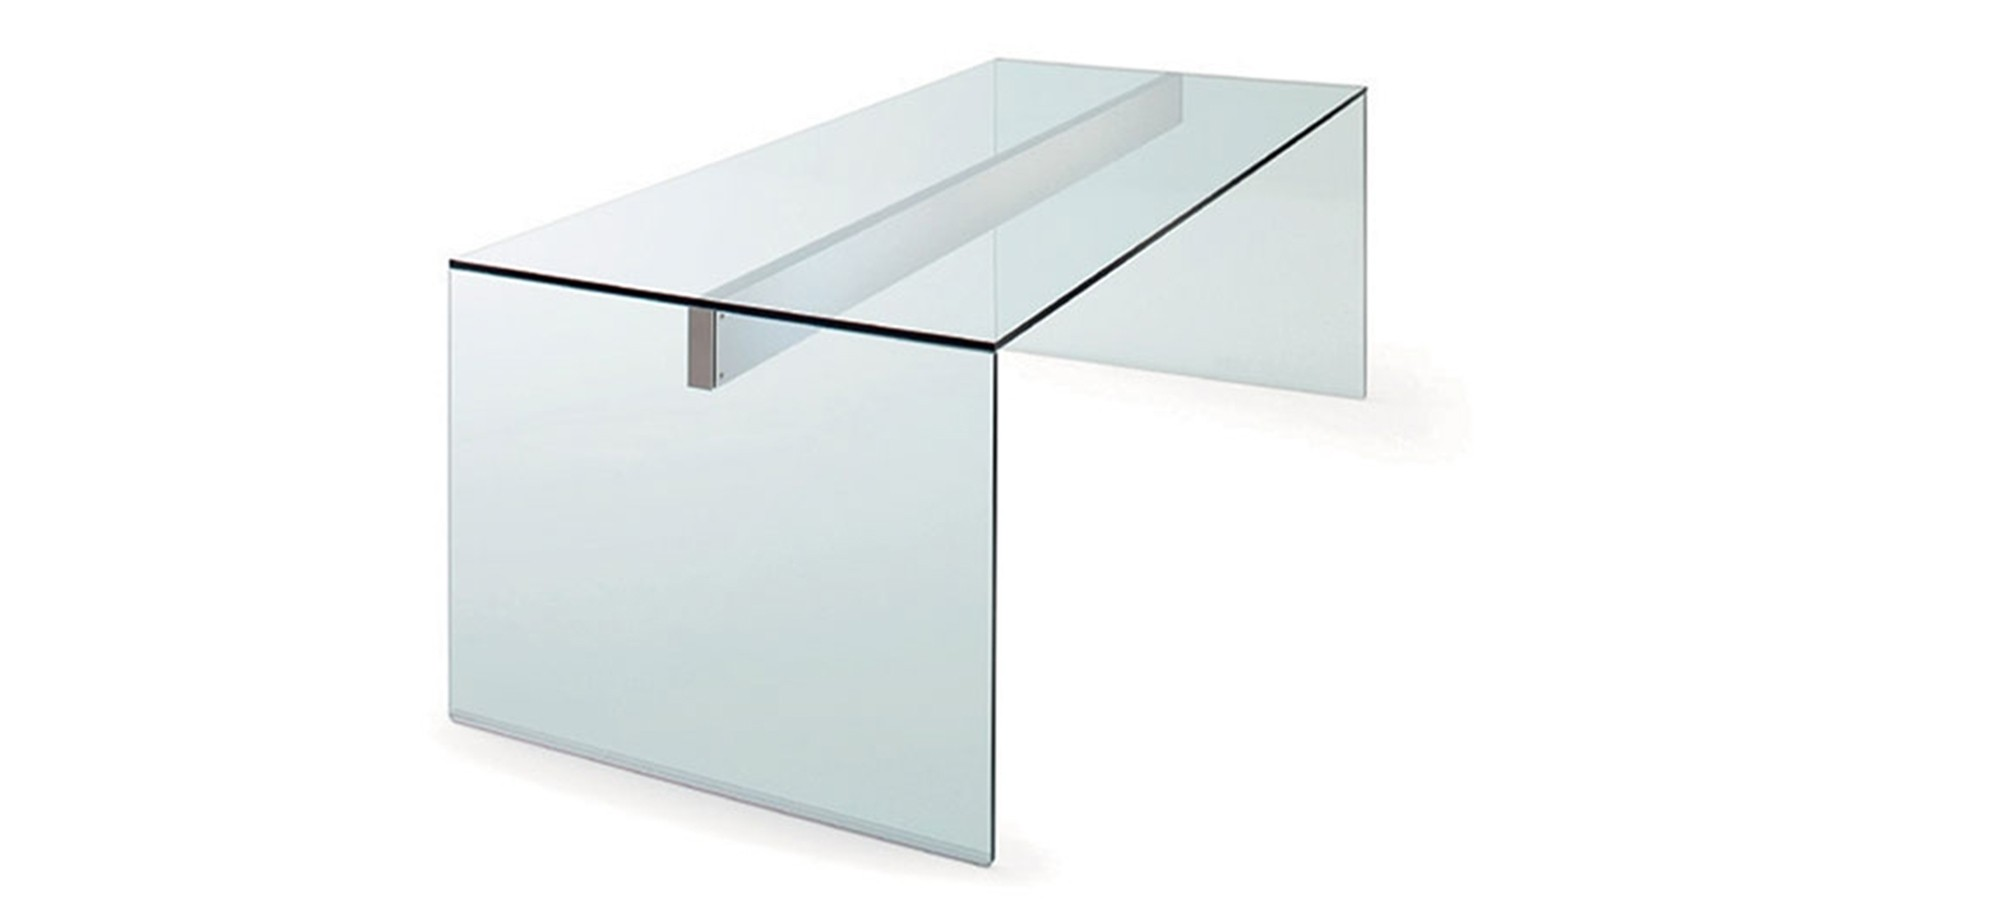 Air-desk-gallotti-and-radice-desk